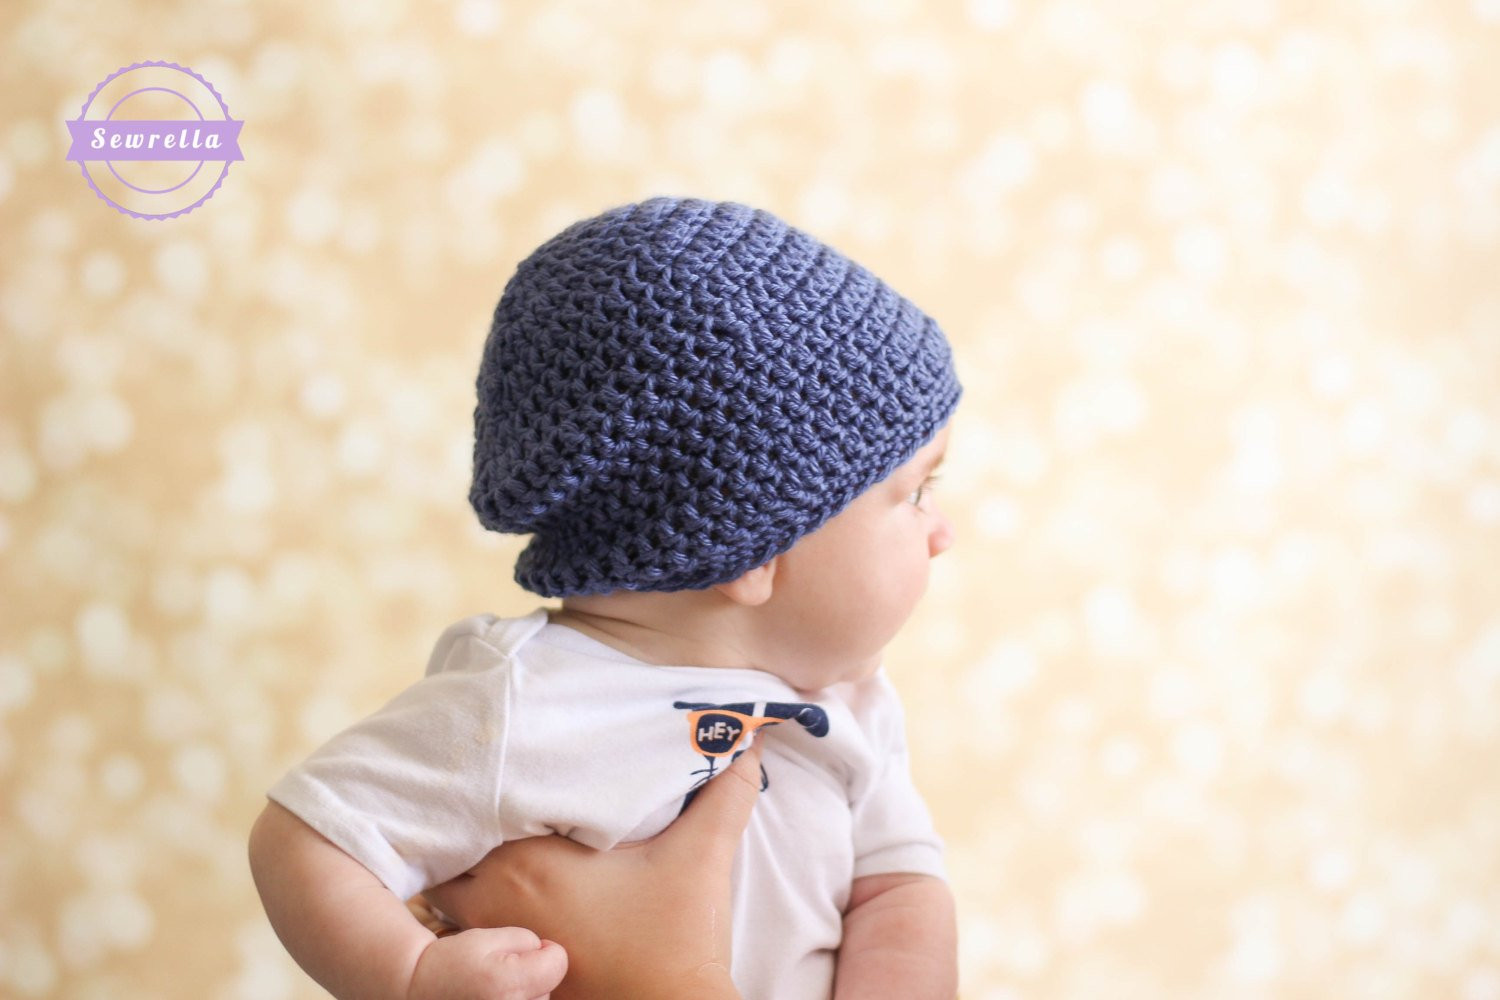 Crochet Newborn Beanie Lovely Crochet Slouchy Baby Beanie Hat Pattern Pdf Instant Of Luxury 43 Pictures Crochet Newborn Beanie